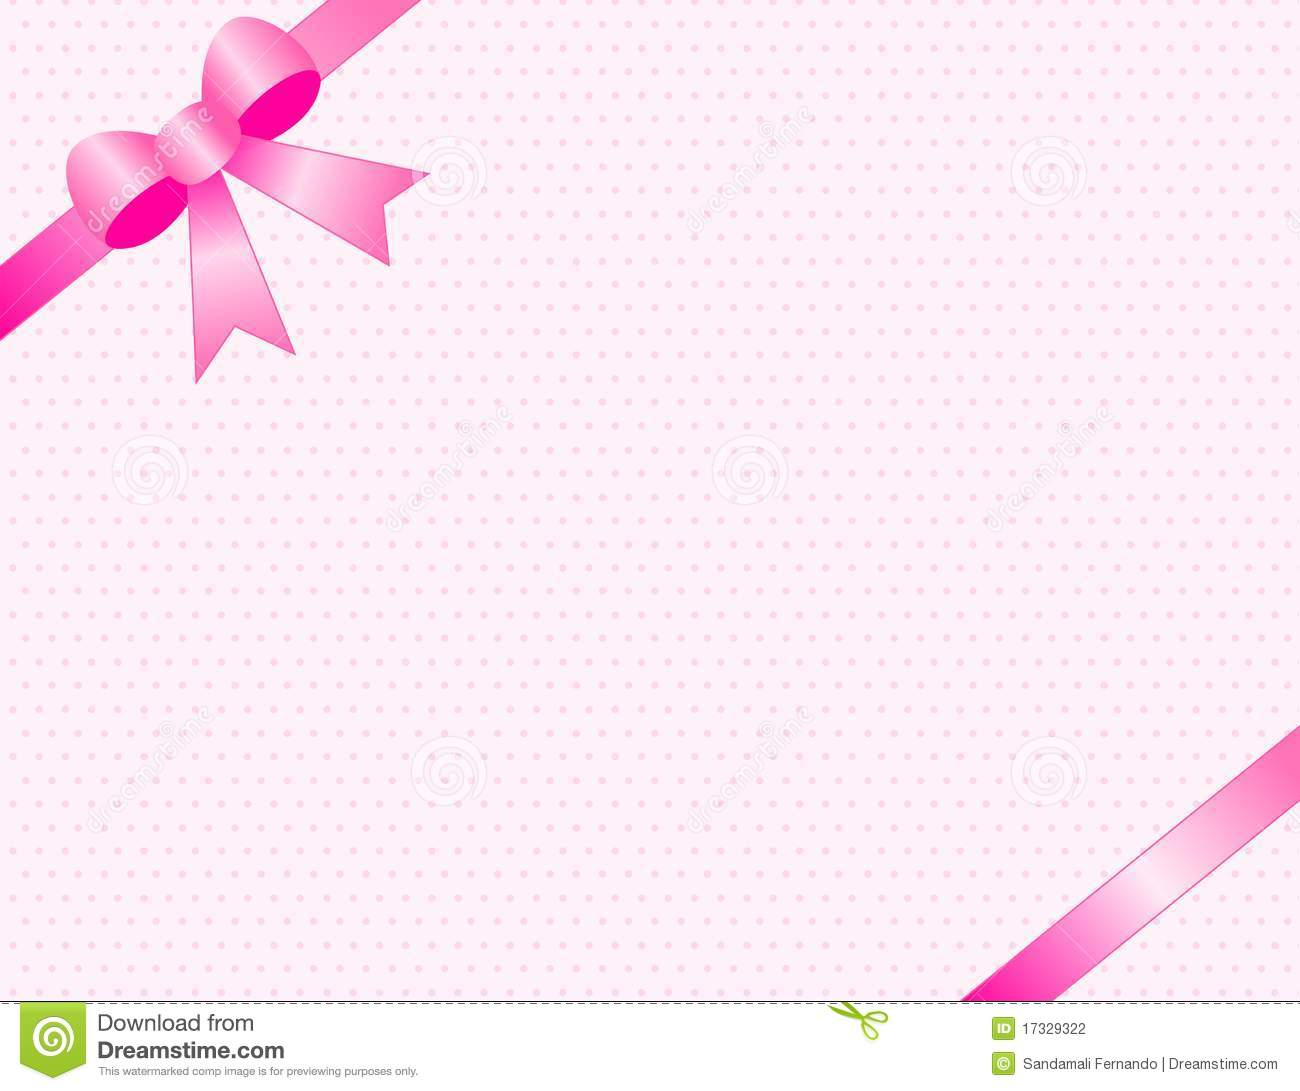 Cute baby girl arrival card /party invitation background with pink